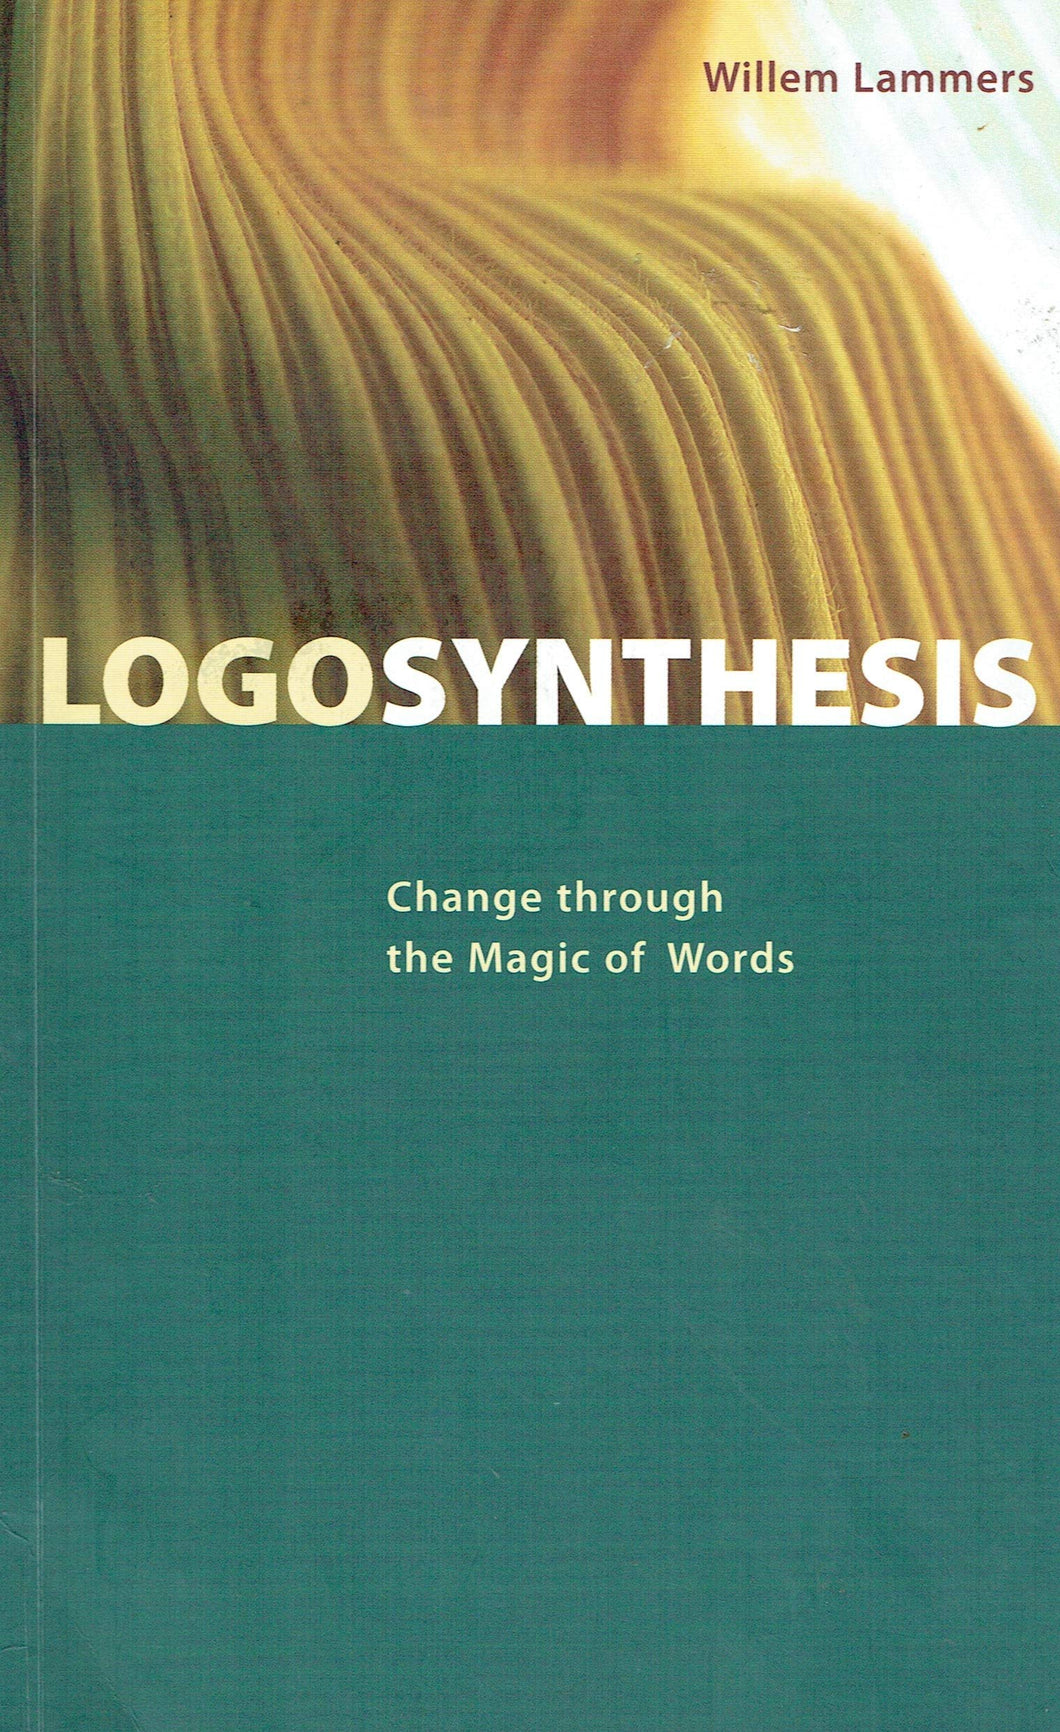 Logosynthesis: Change through the Magic of Words